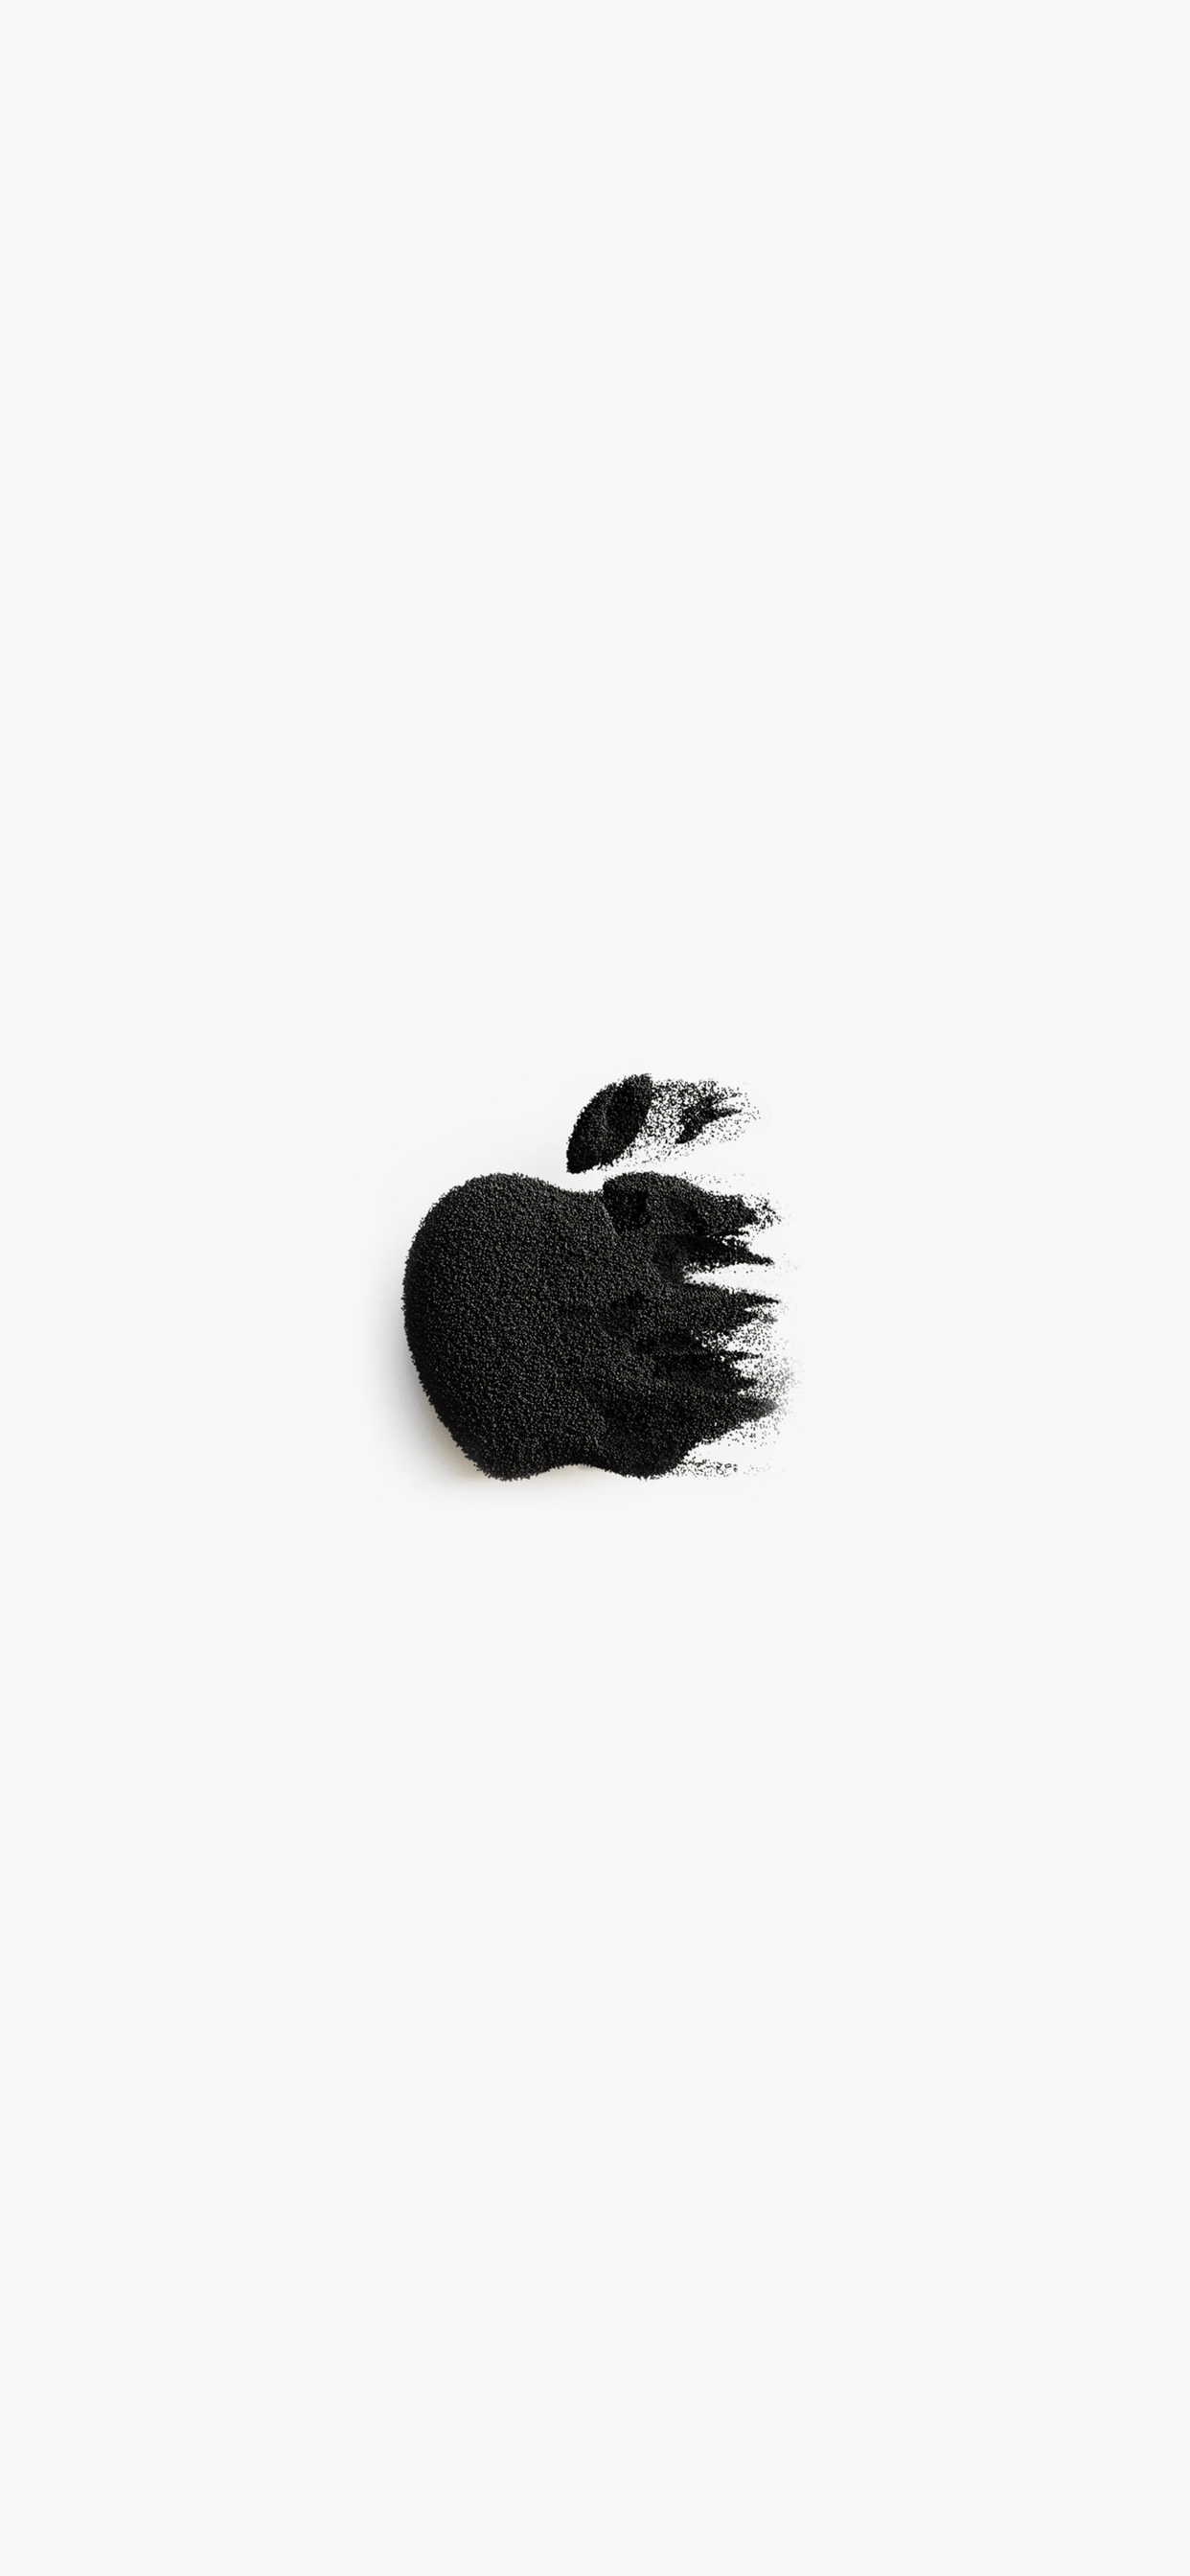 15 Apple logo